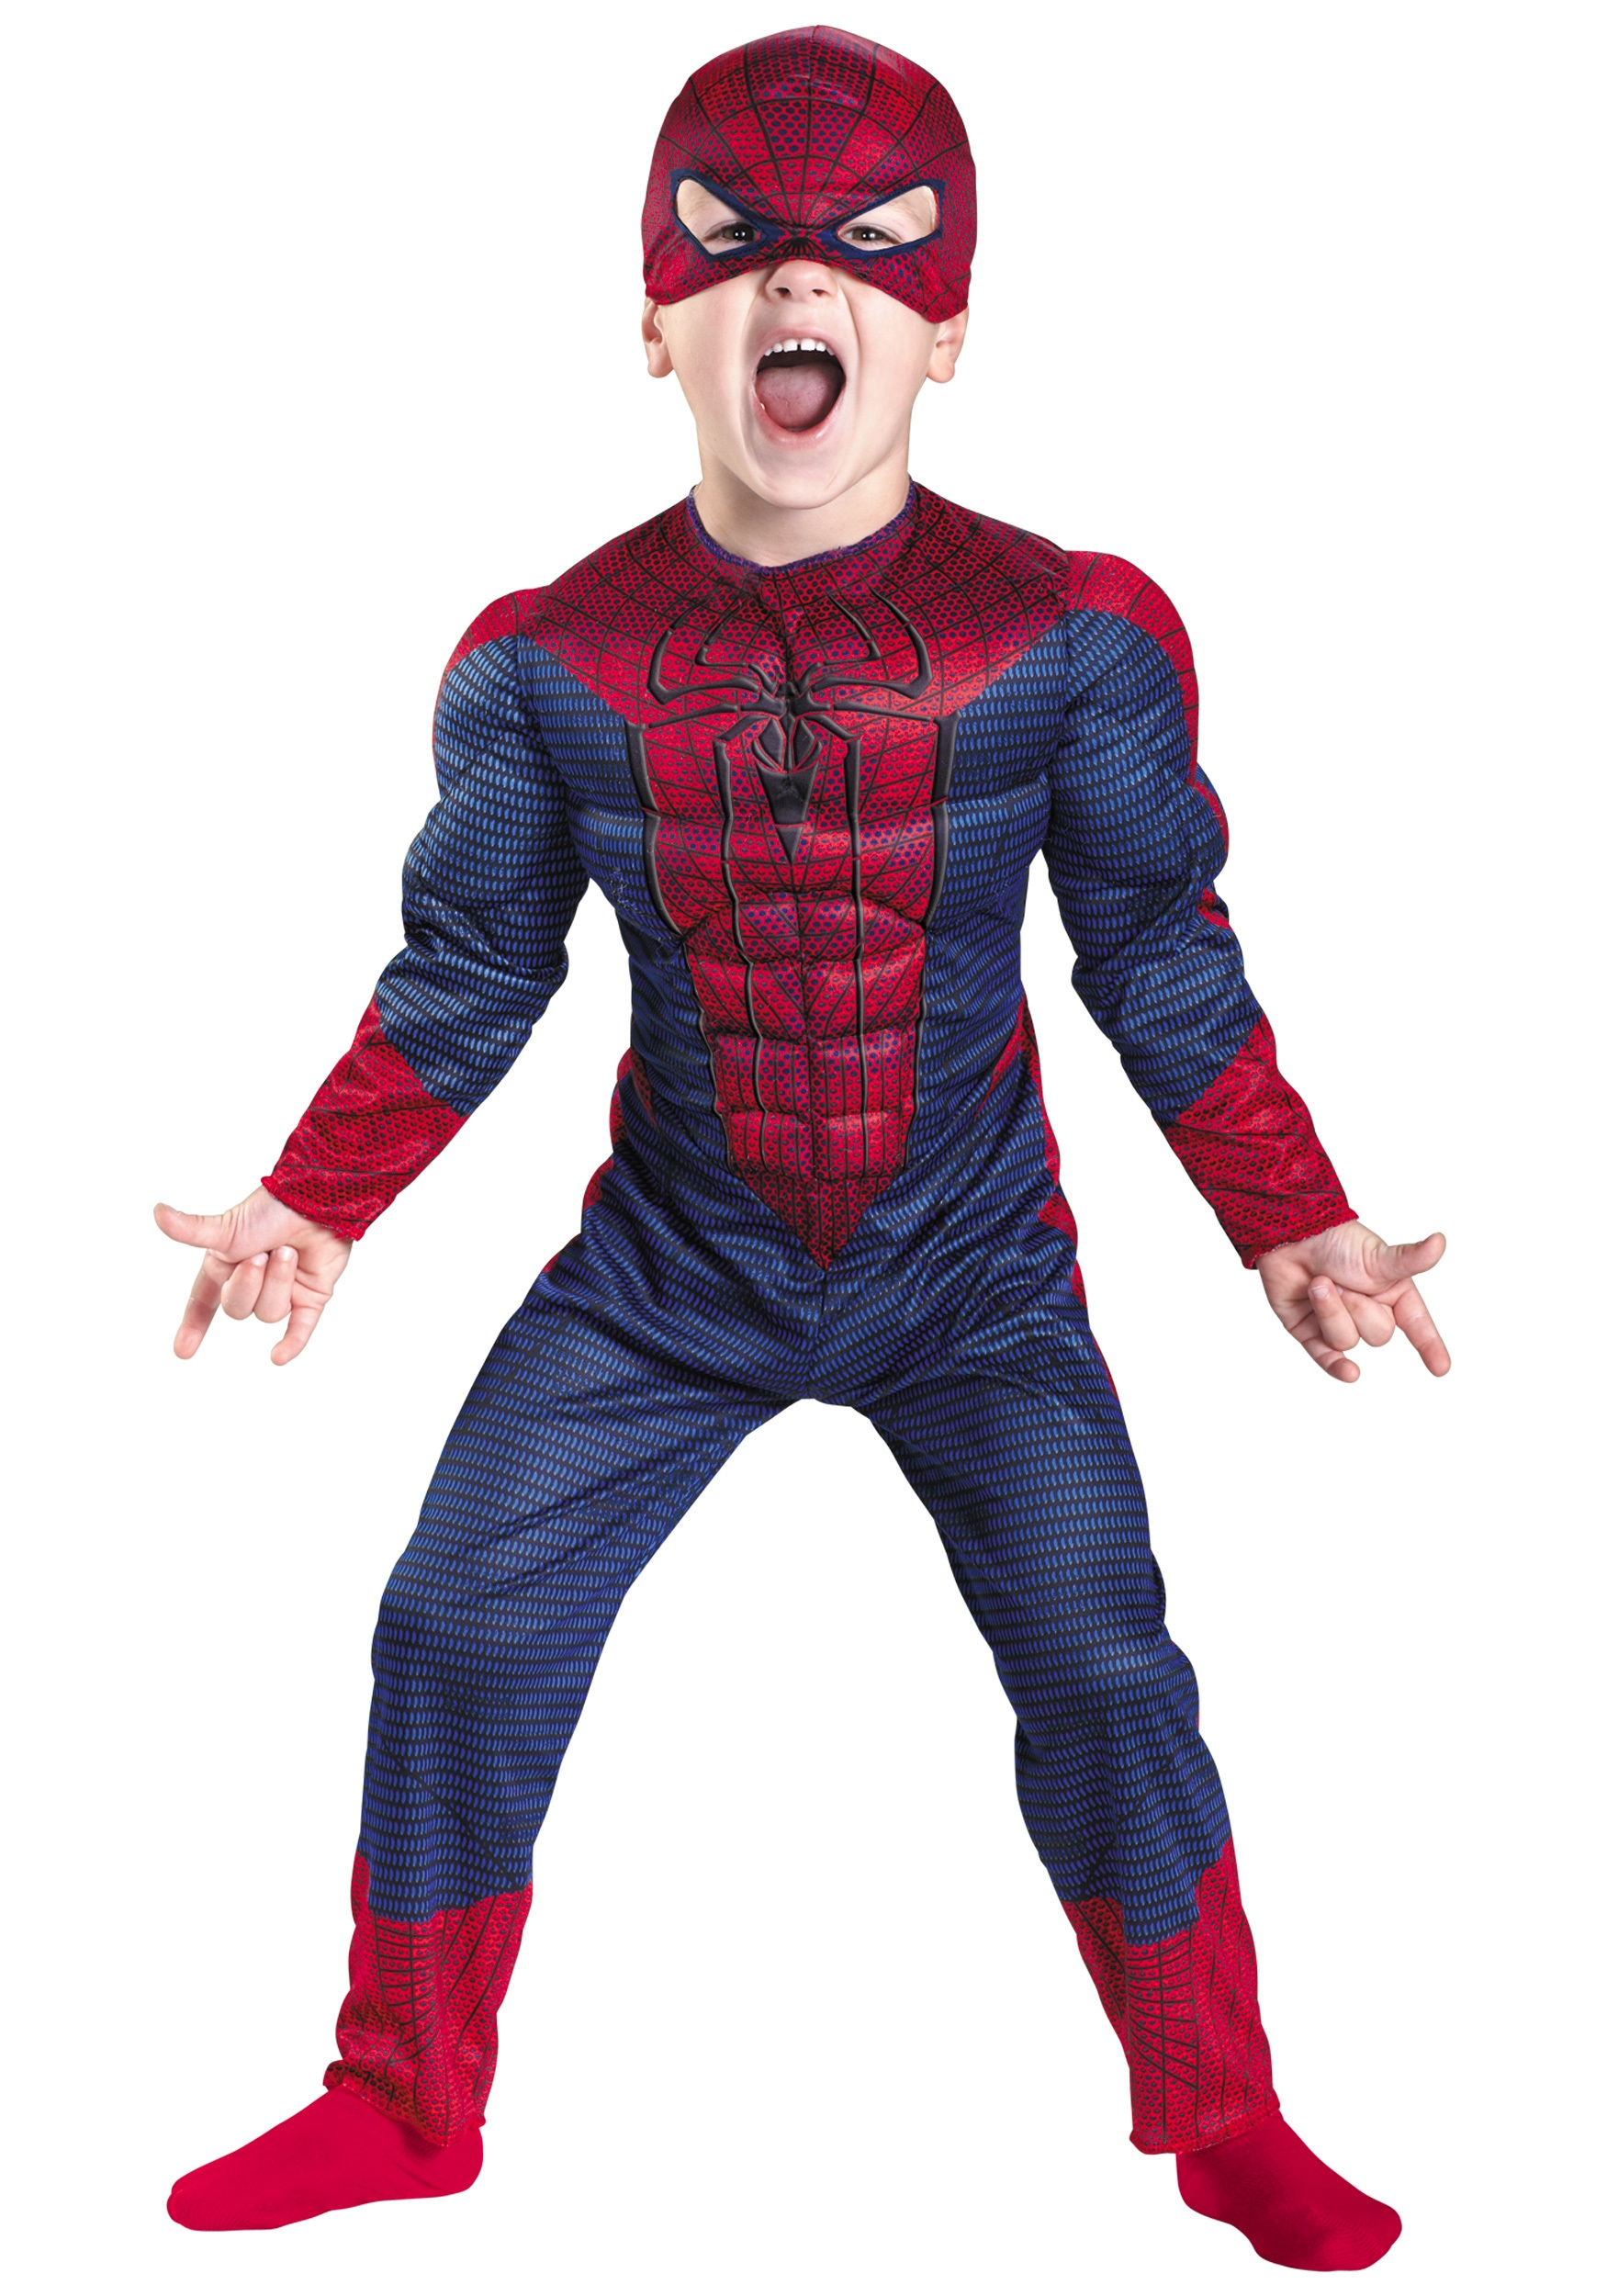 Toddler Spider-Man Movie Muscle Costume  sc 1 st  Halloween Costumes & Toddler Spider-Man Movie Muscle Costume - Halloween Costumes